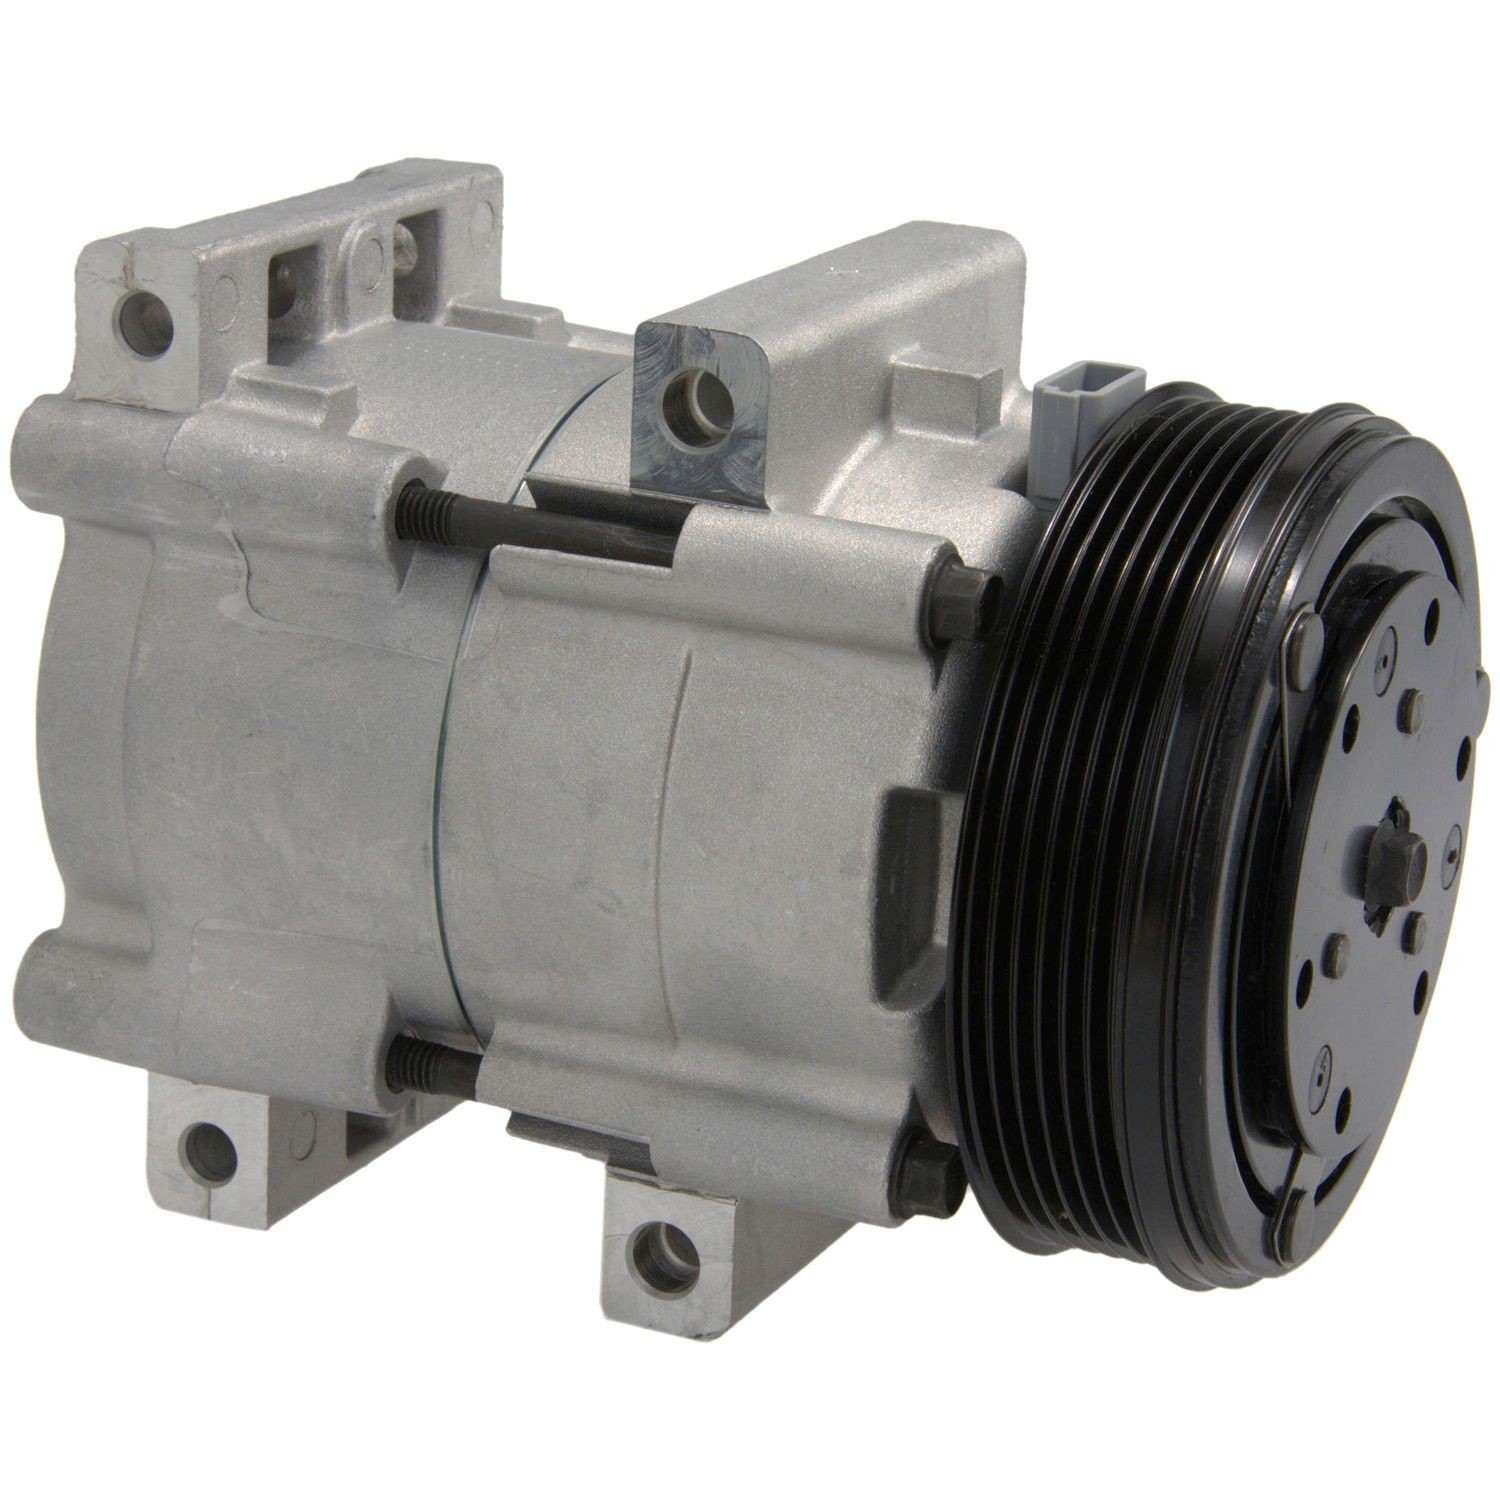 MAGNETI MARELLI OFFERED BY MOPAR - New Compressor - MGM 1AMAC00023